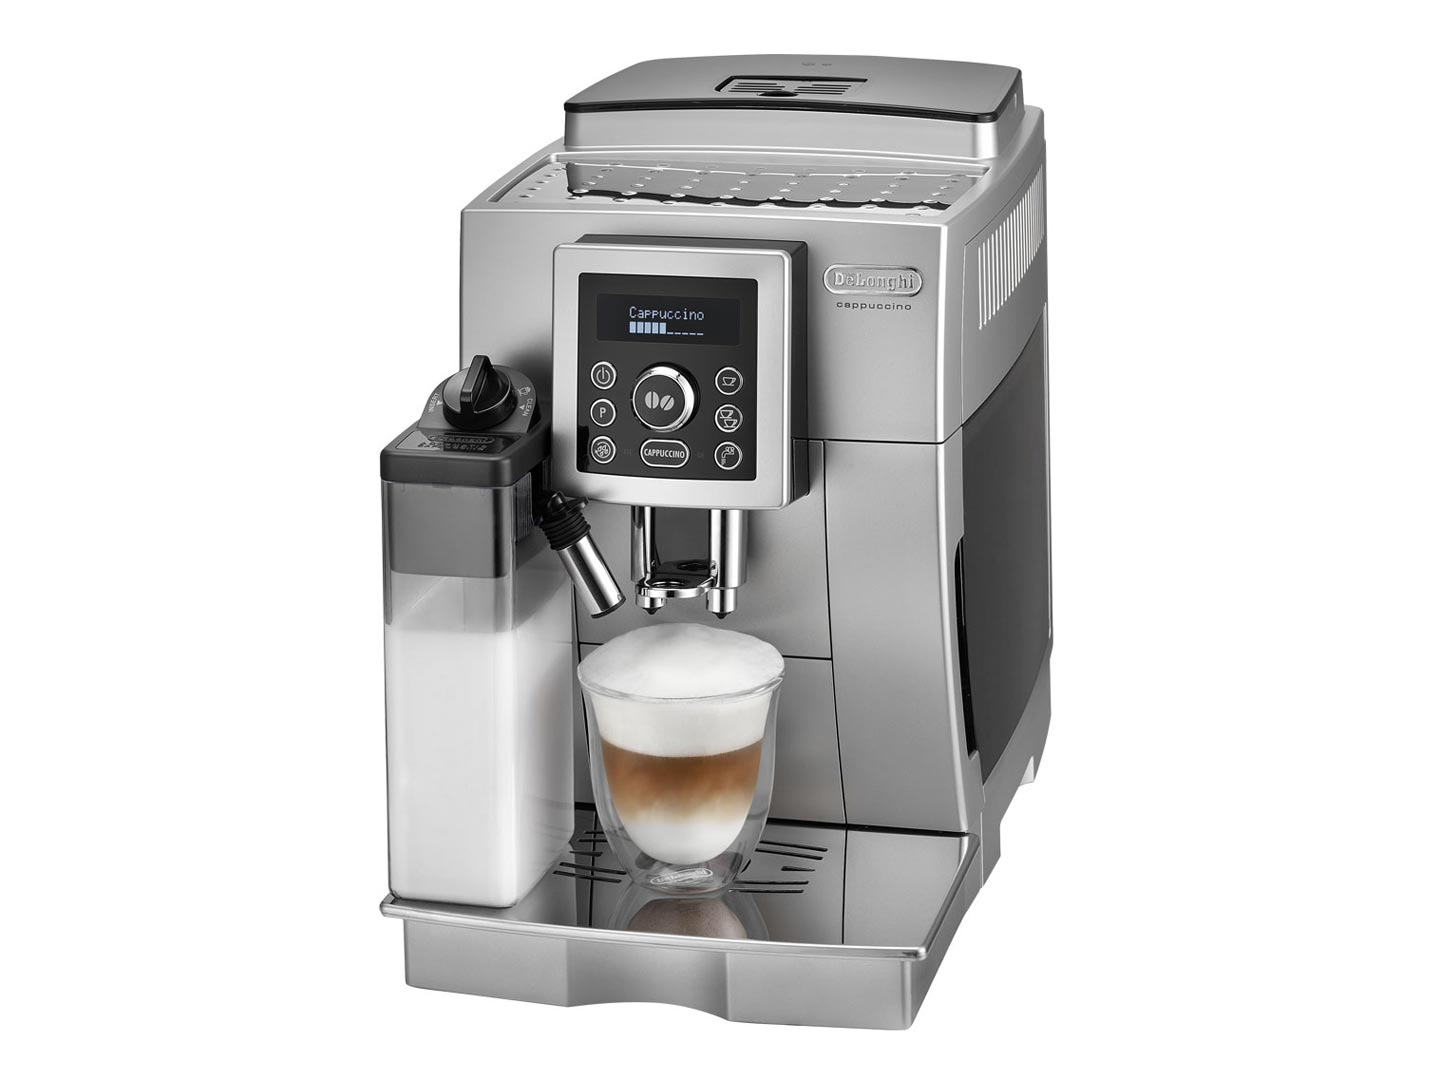 Kenwood_(Delonghi) 340767185 ECAM 23450S left_list buy delonghi ecam23 460 bean to cup coffee machine silver  at edmiracle.co